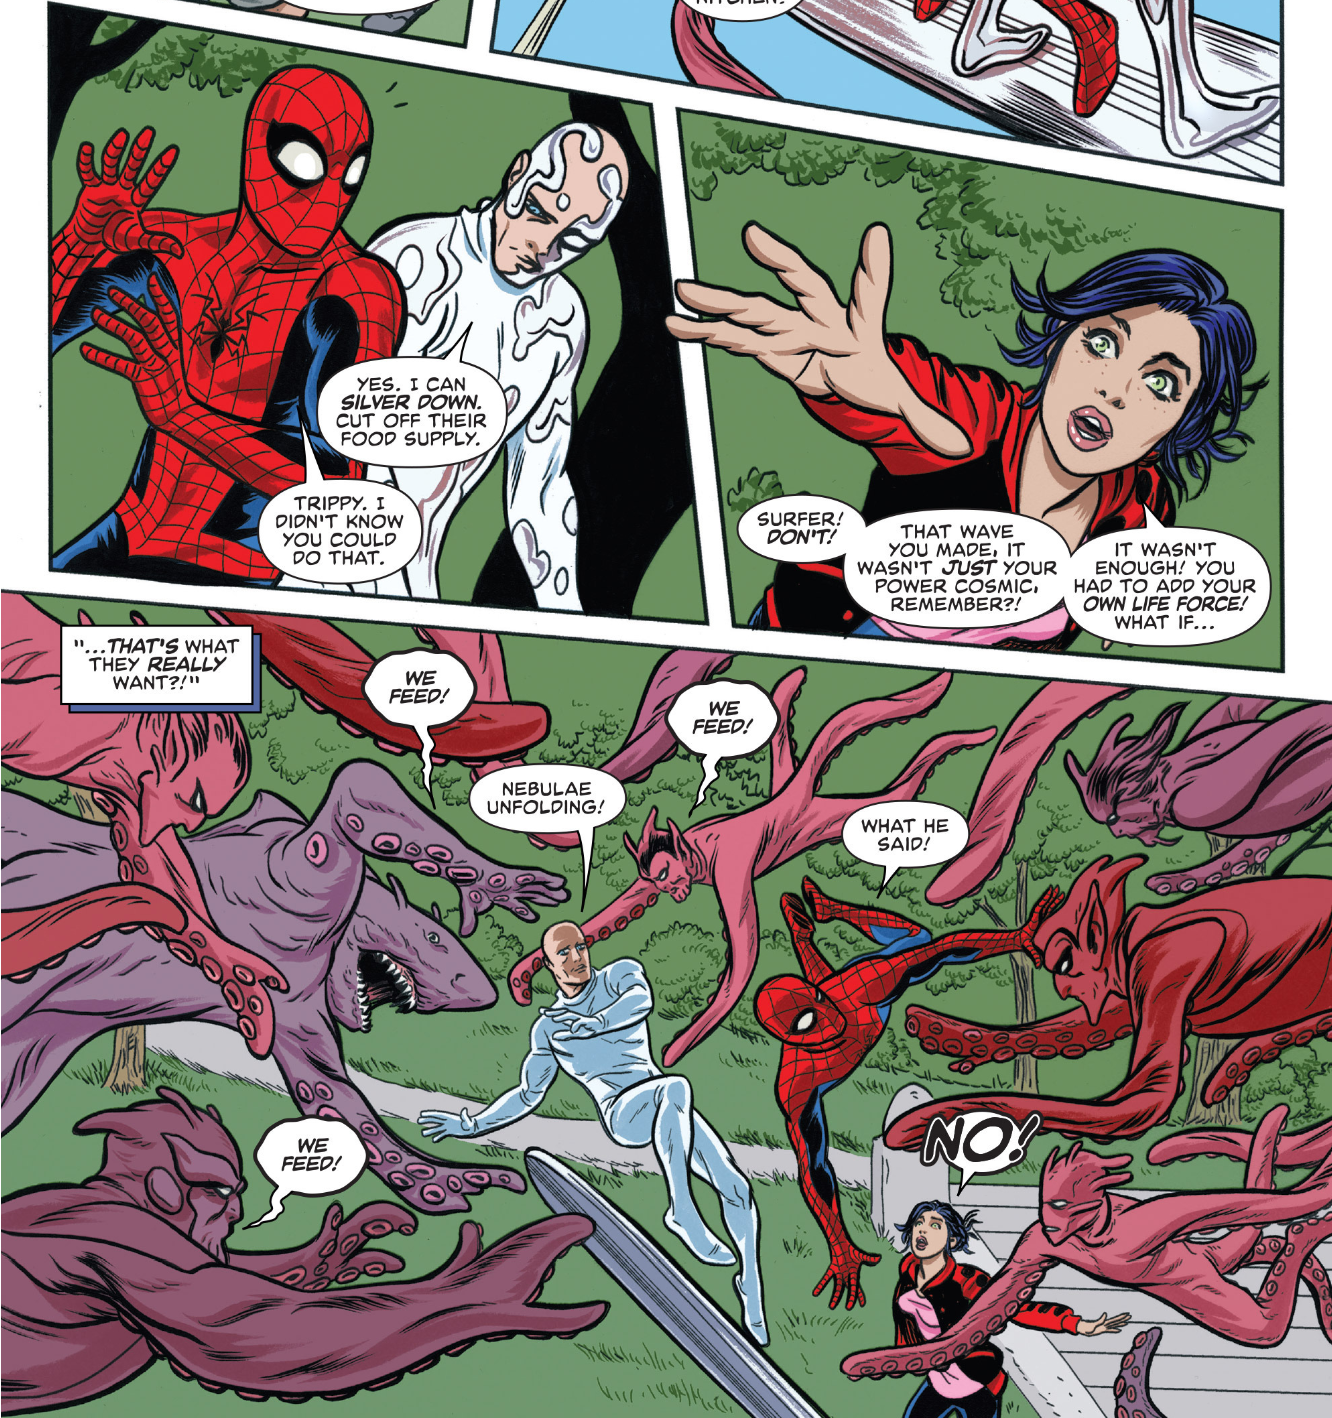 Weird Science DC Comics: Silver Surfer #6 Review and **SPOILERS** - Marvel  Monday